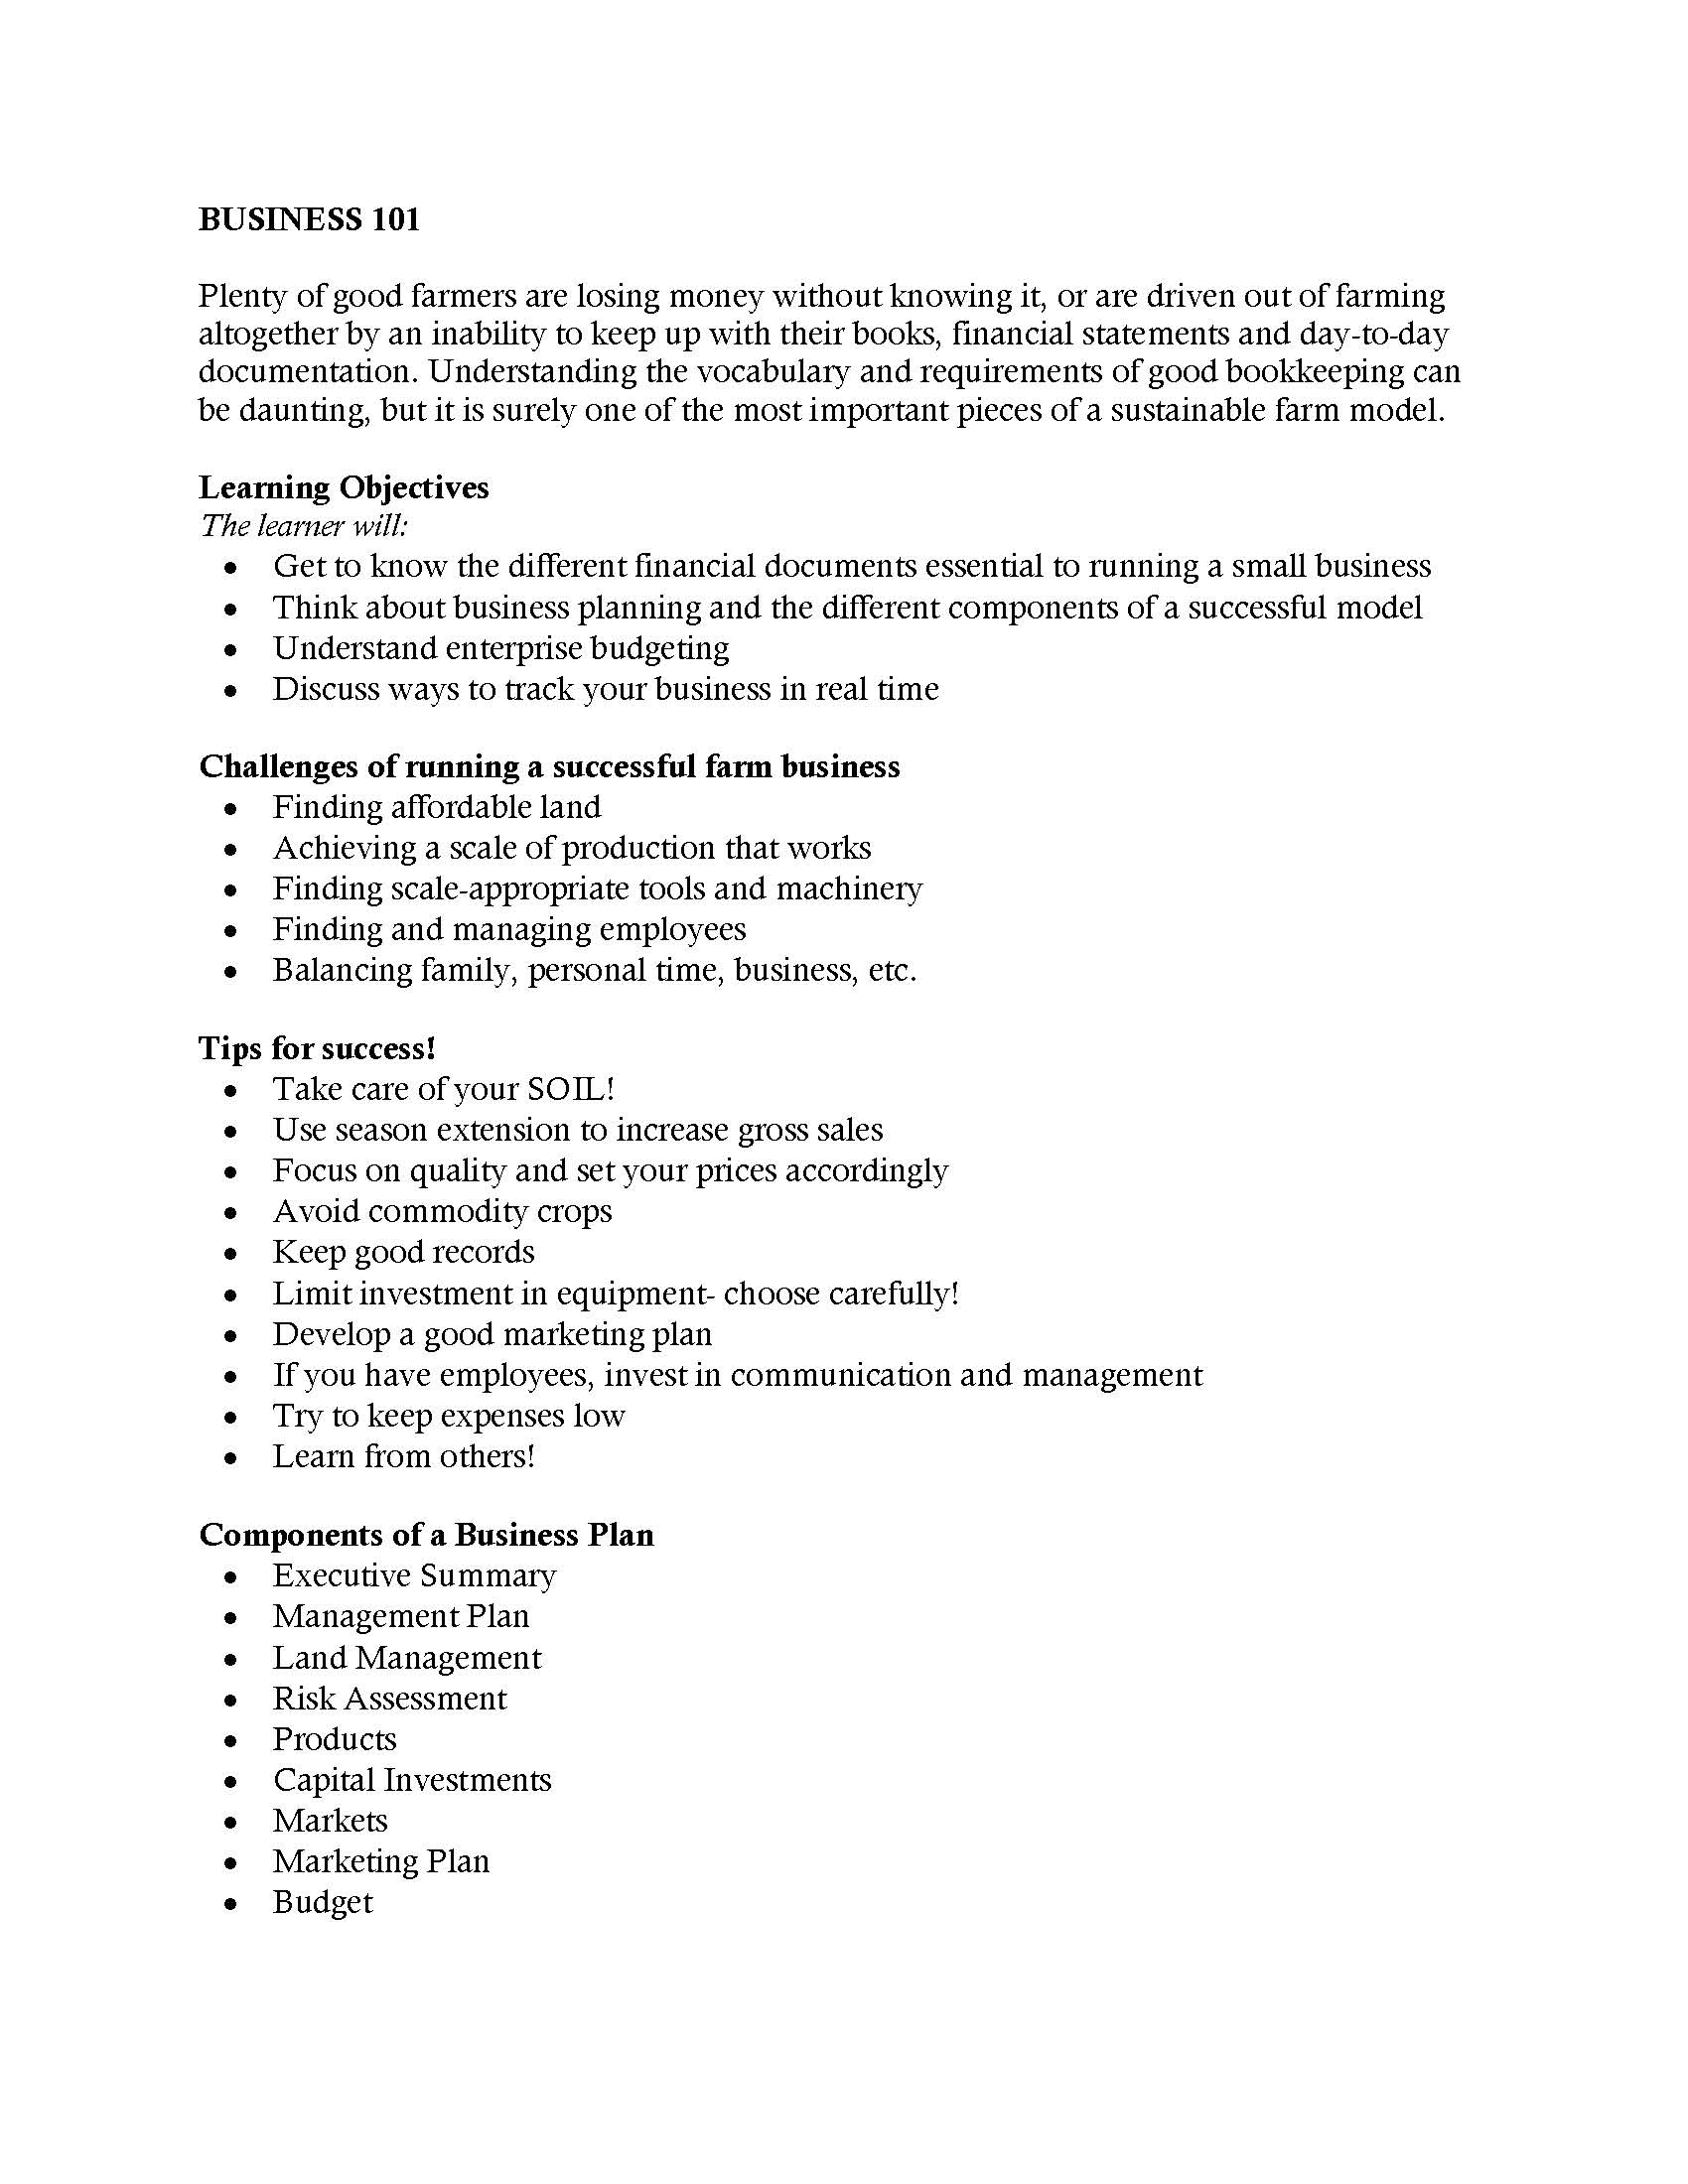 RFC Class Outlines_Page_12.jpg